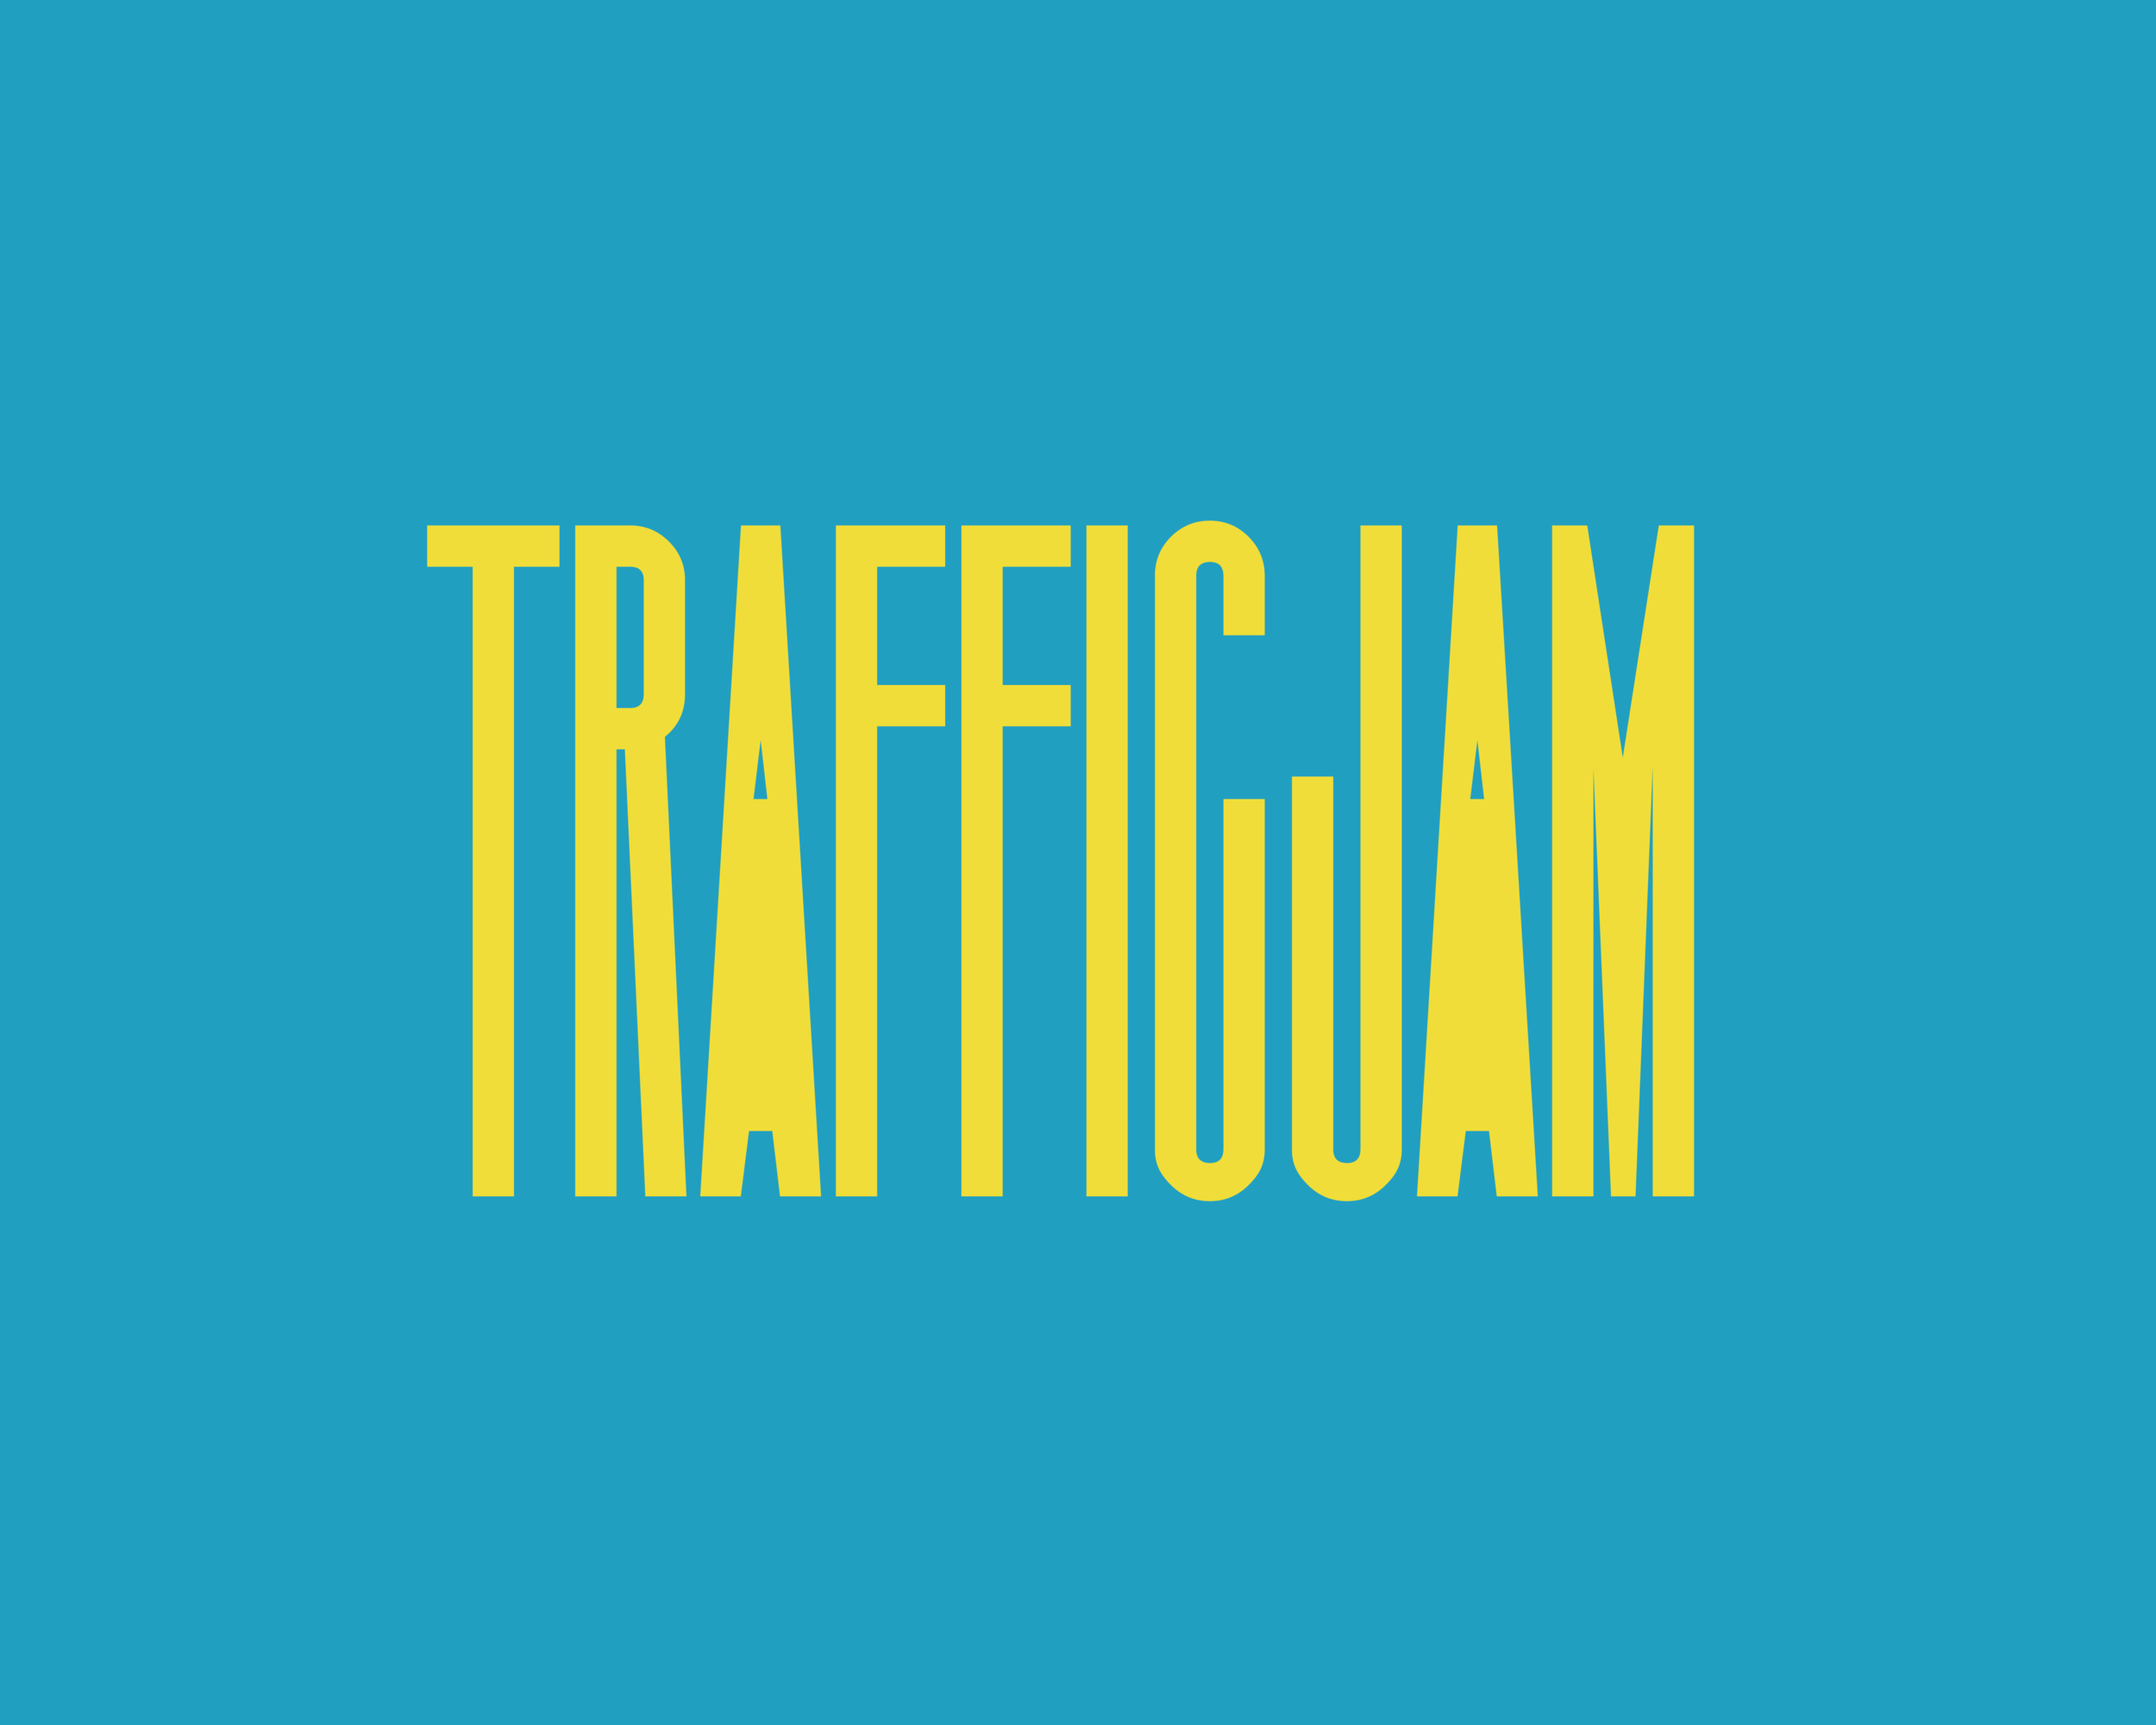 TRAFFIC JAM WORKSHOP   Bypass the   traffic and take the city route  - this workshop provides a diverse experience of storytelling through movement, exploratory improv, and jazz funk. A group reflection is offered at the end of this shift.